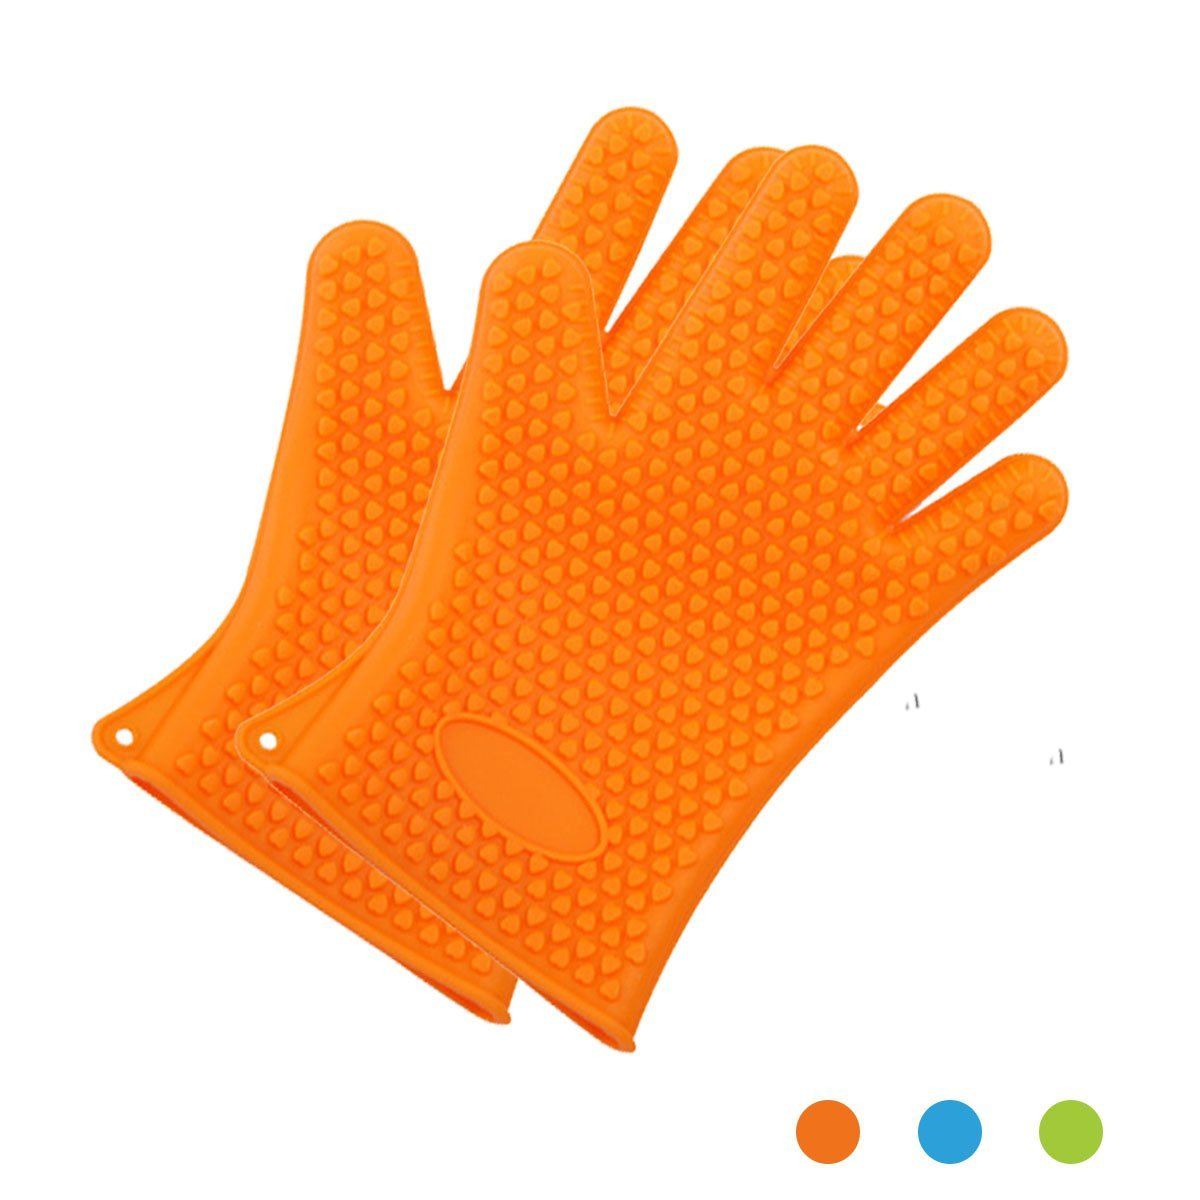 HAPPYX Silicone Cooking & Grilling Gloves - Heat Resistant Oven Mitt for Grilling, BBQ, Baking –Versatile Non-Slip Potholders - Insulated & Waterproof - Full Finger, Hand, Wrist Protection (Orange)